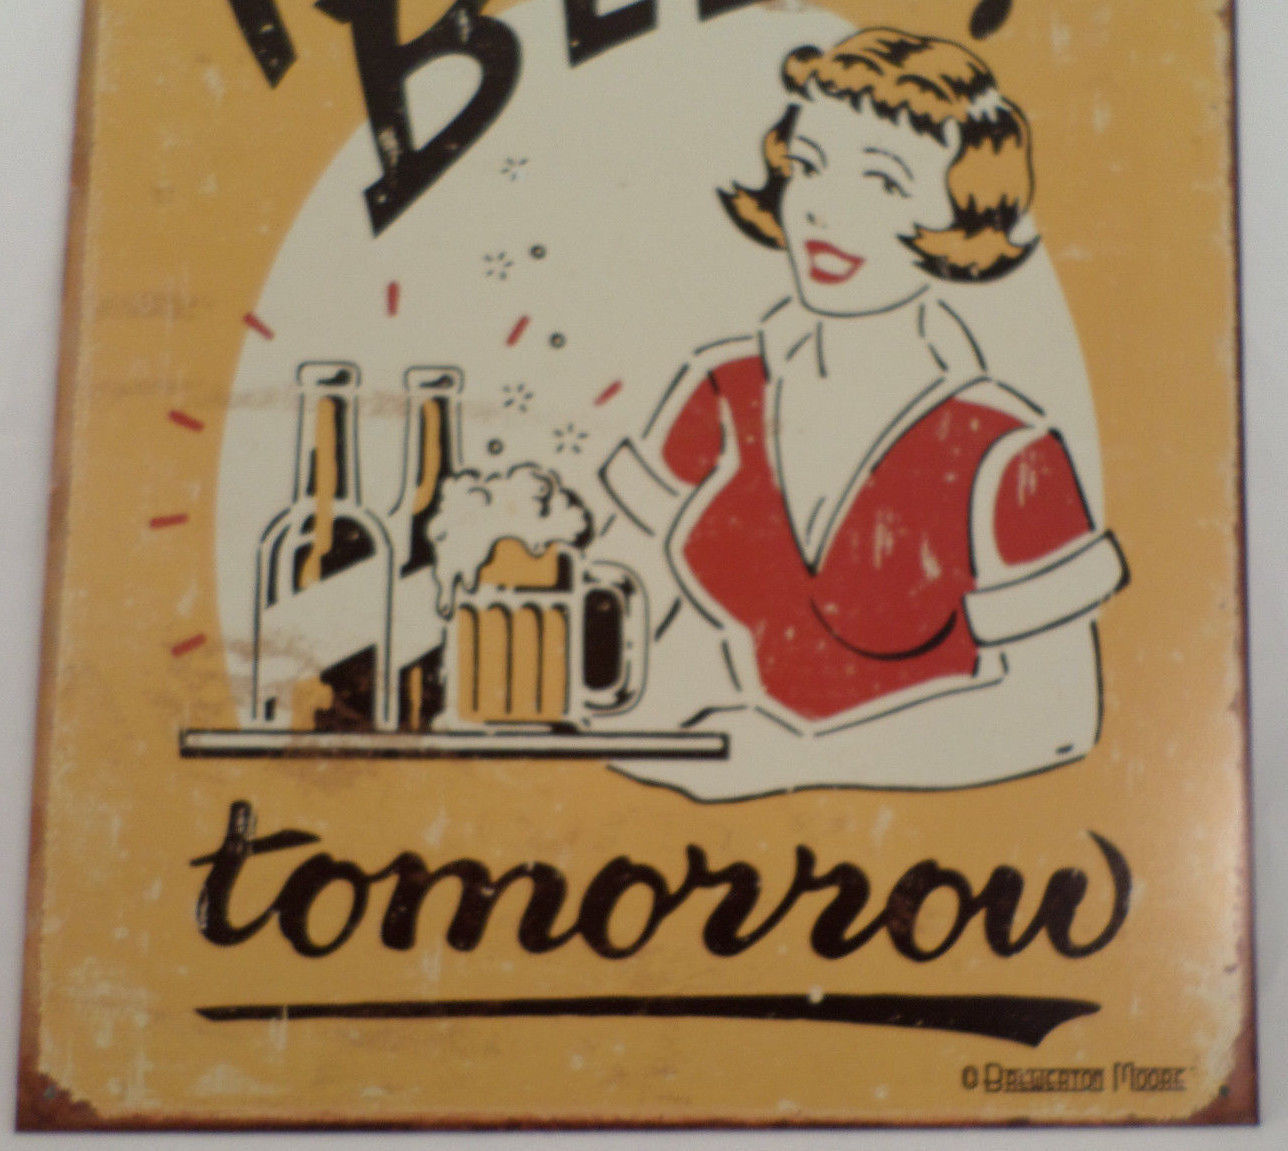 Man Cave Art Decor : Free beer tomorrow retro inspired tin sign man cave wall